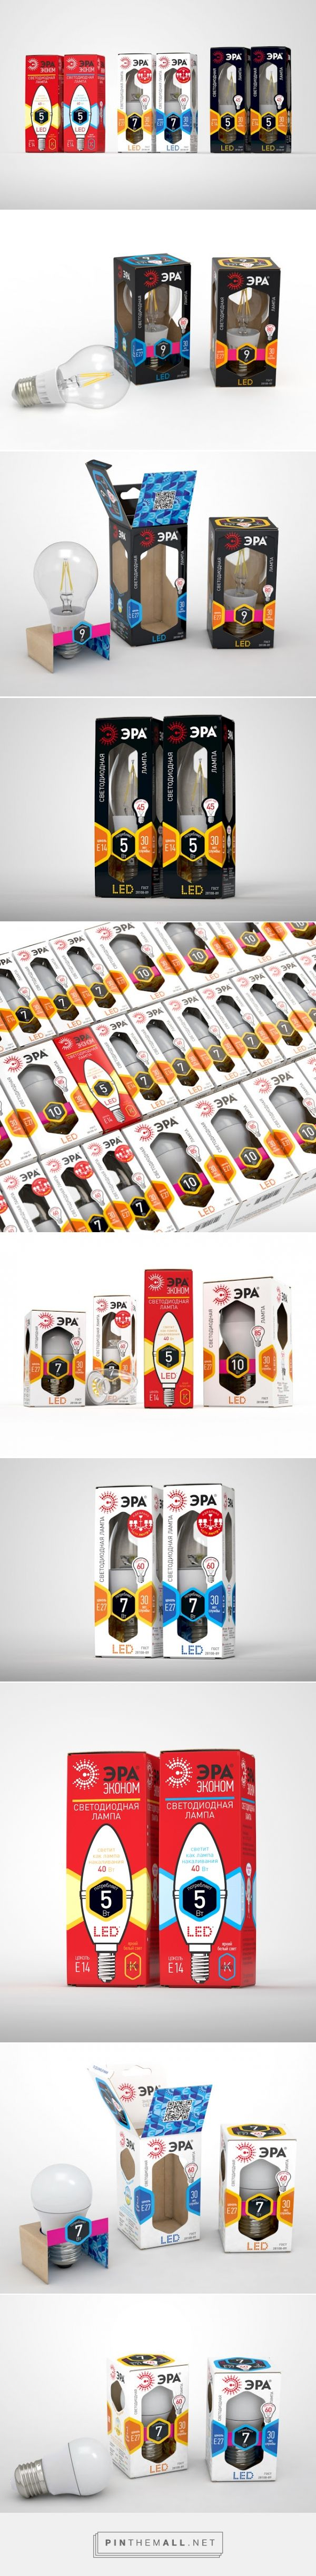 LED Bulbs ERA - Packaging of the World - Creative Package Design Gallery - http://www.packagingoftheworld.com/2016/02/led-bulbs-era.html